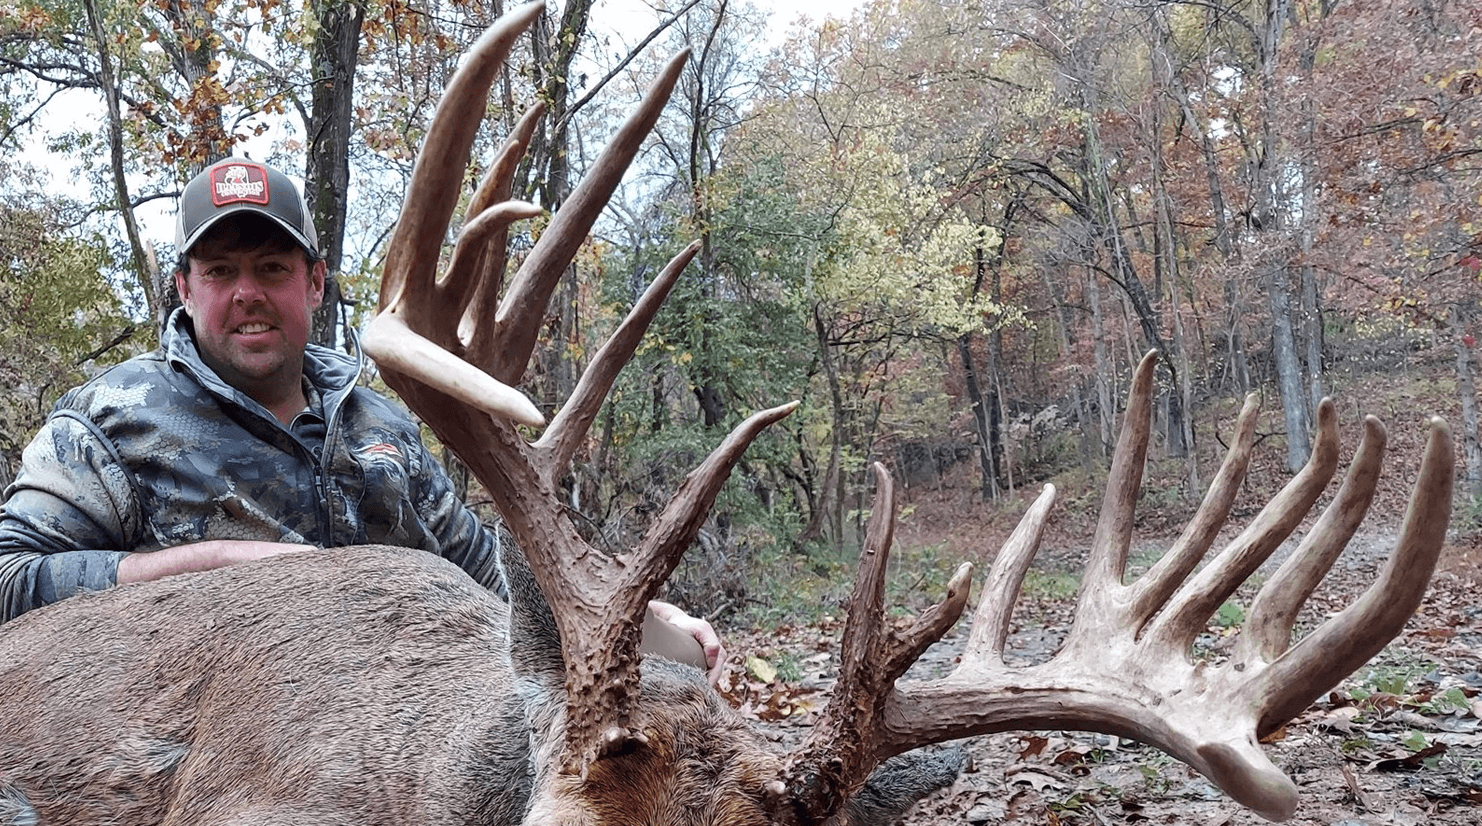 The 230-Inch Illinois Giant